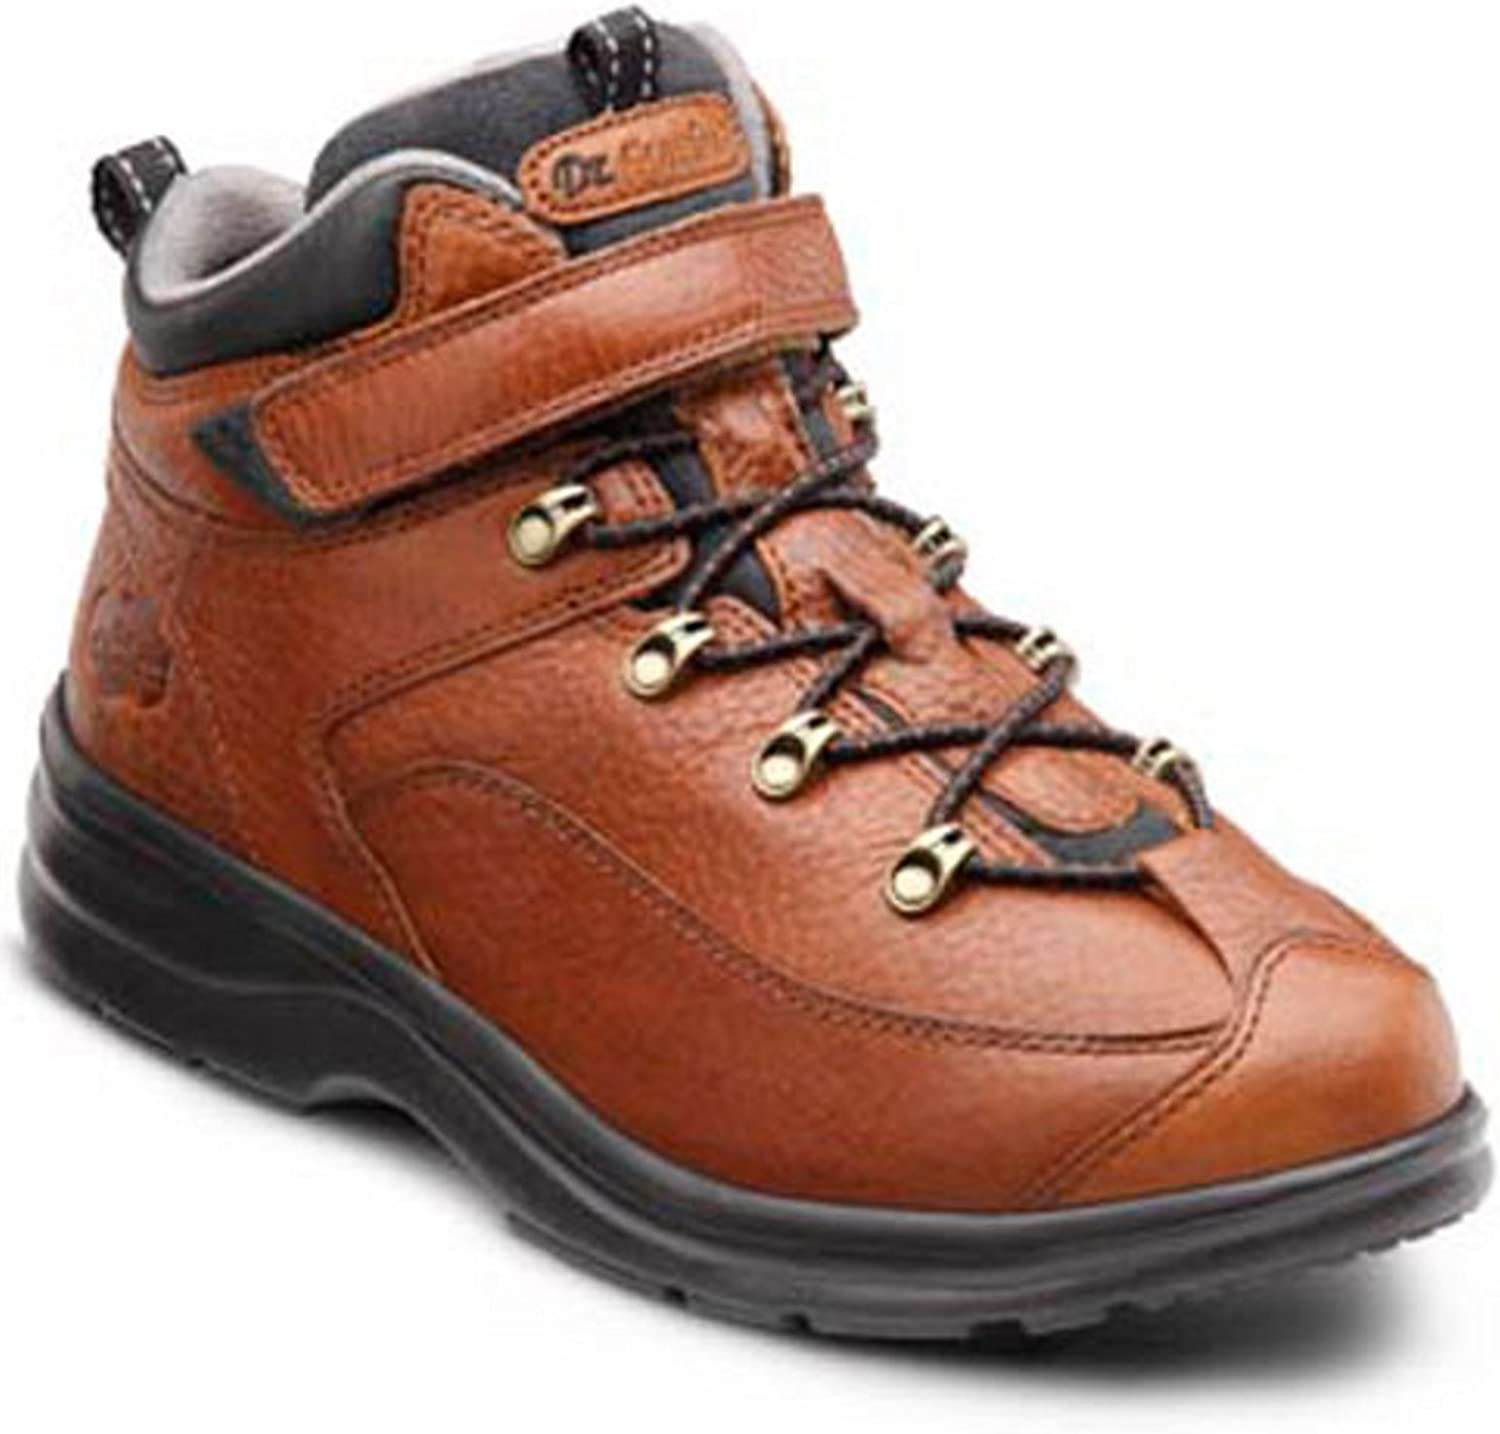 Dr. Comfort Vigor Women's Therapeutic Diabetic Extra Depth Hiking Boot Leather Lace Black